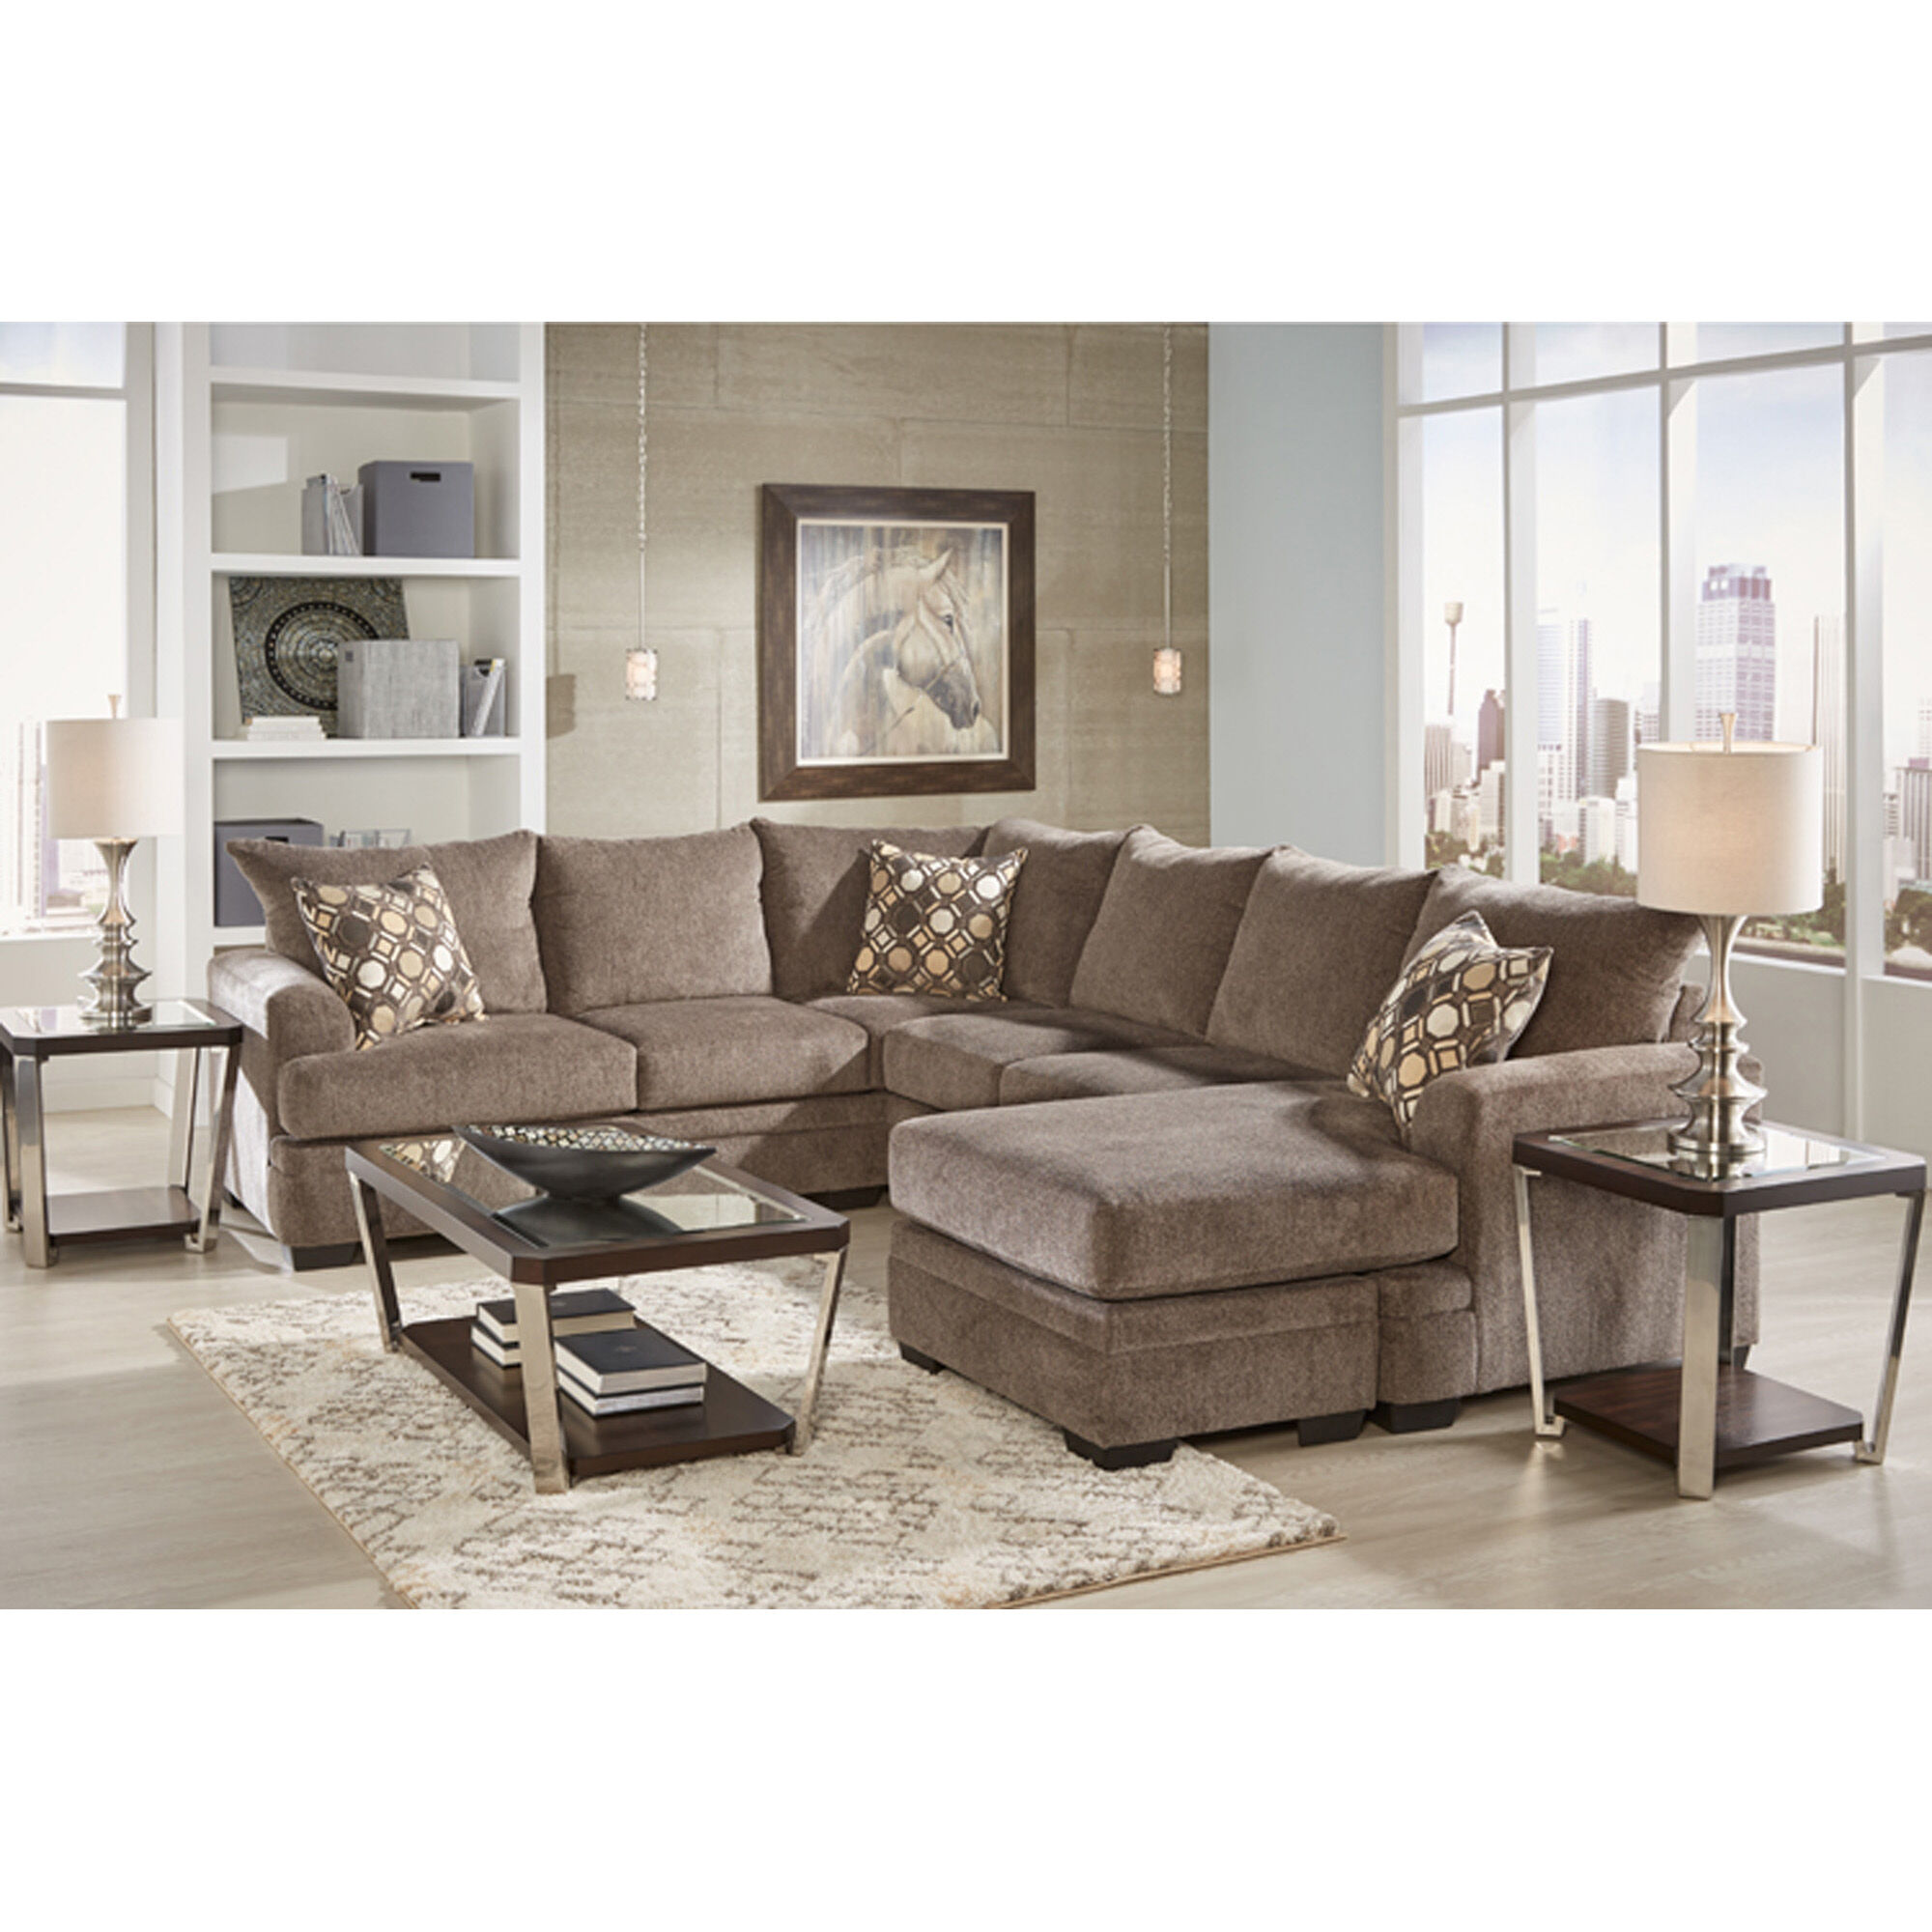 New living room furniture Suburban 7piece Kimberly Living Room Collection Aarons Rent To Own Living Room Furniture Aarons